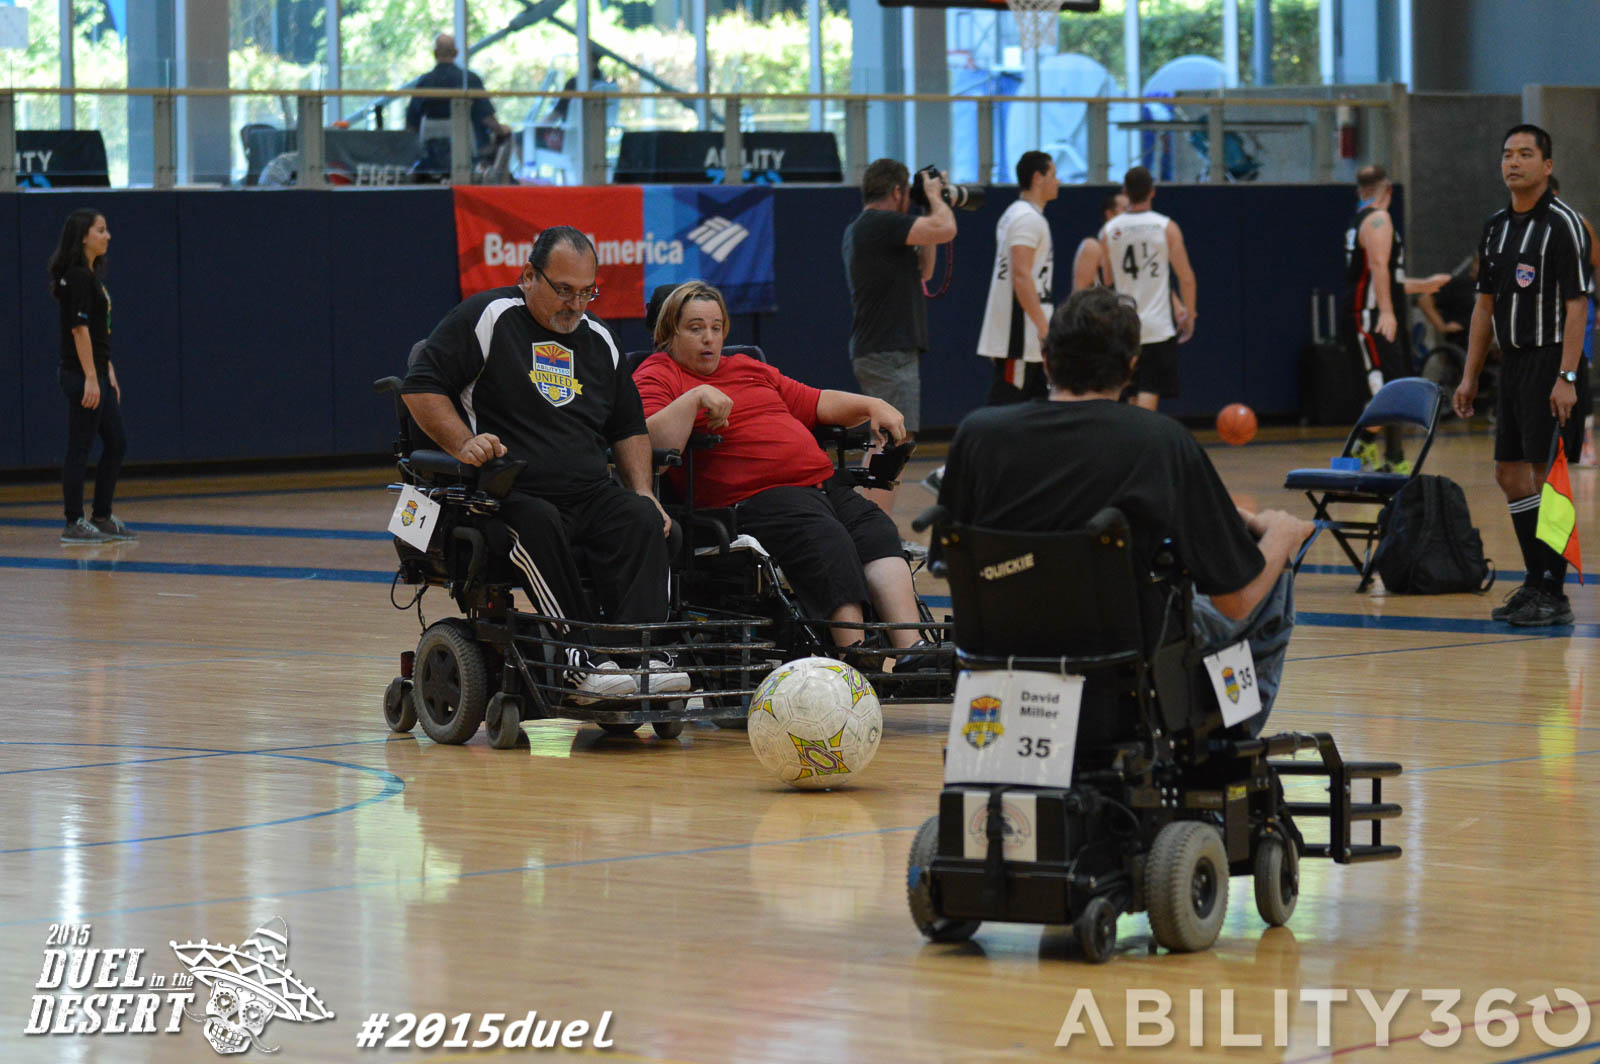 three power chair players. go after the ball. The ball is in the center of the photo